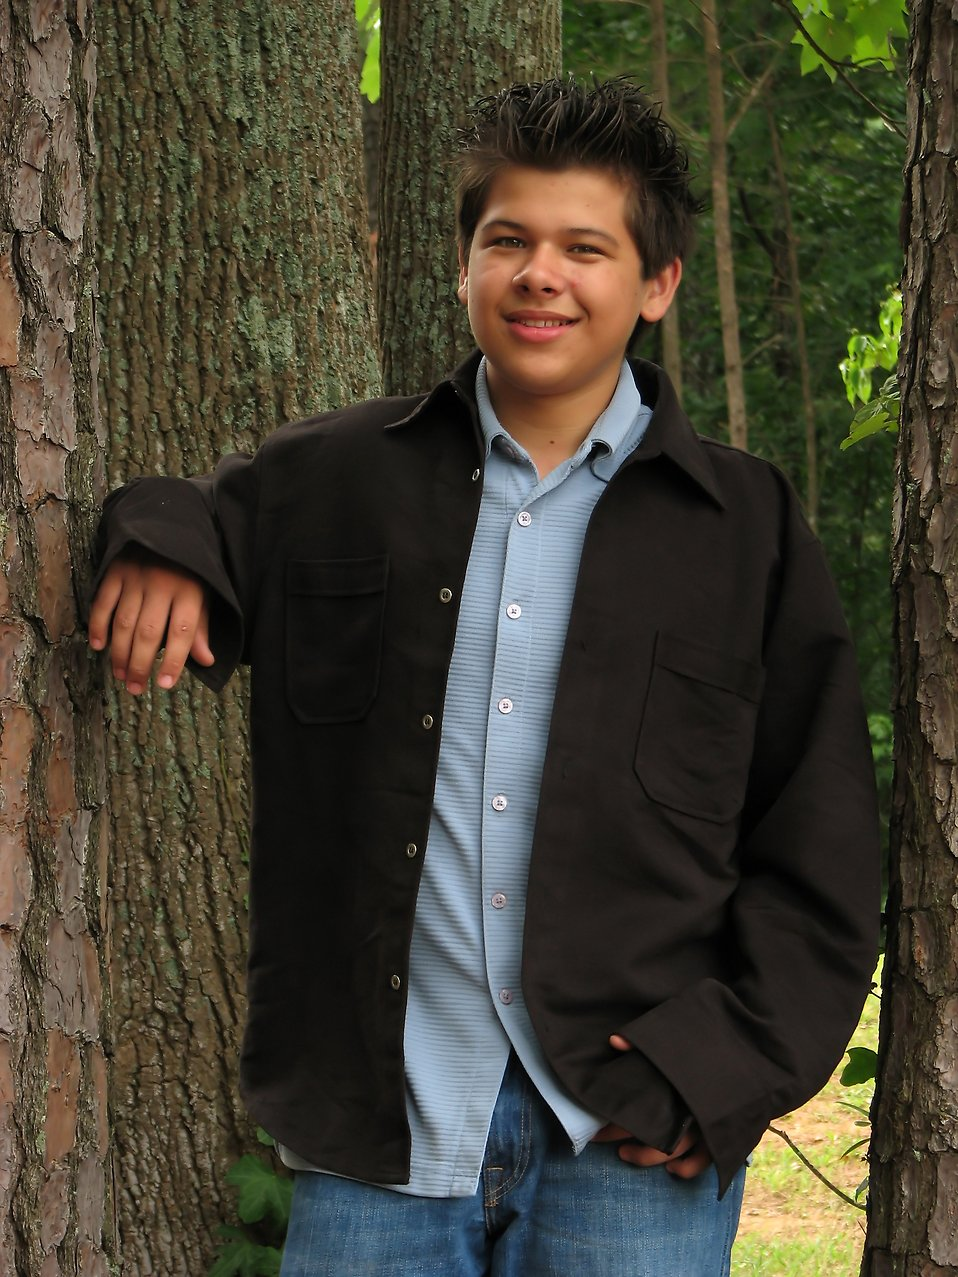 A young latino teen boy posing outdoors by a tree : Free Stock Photo